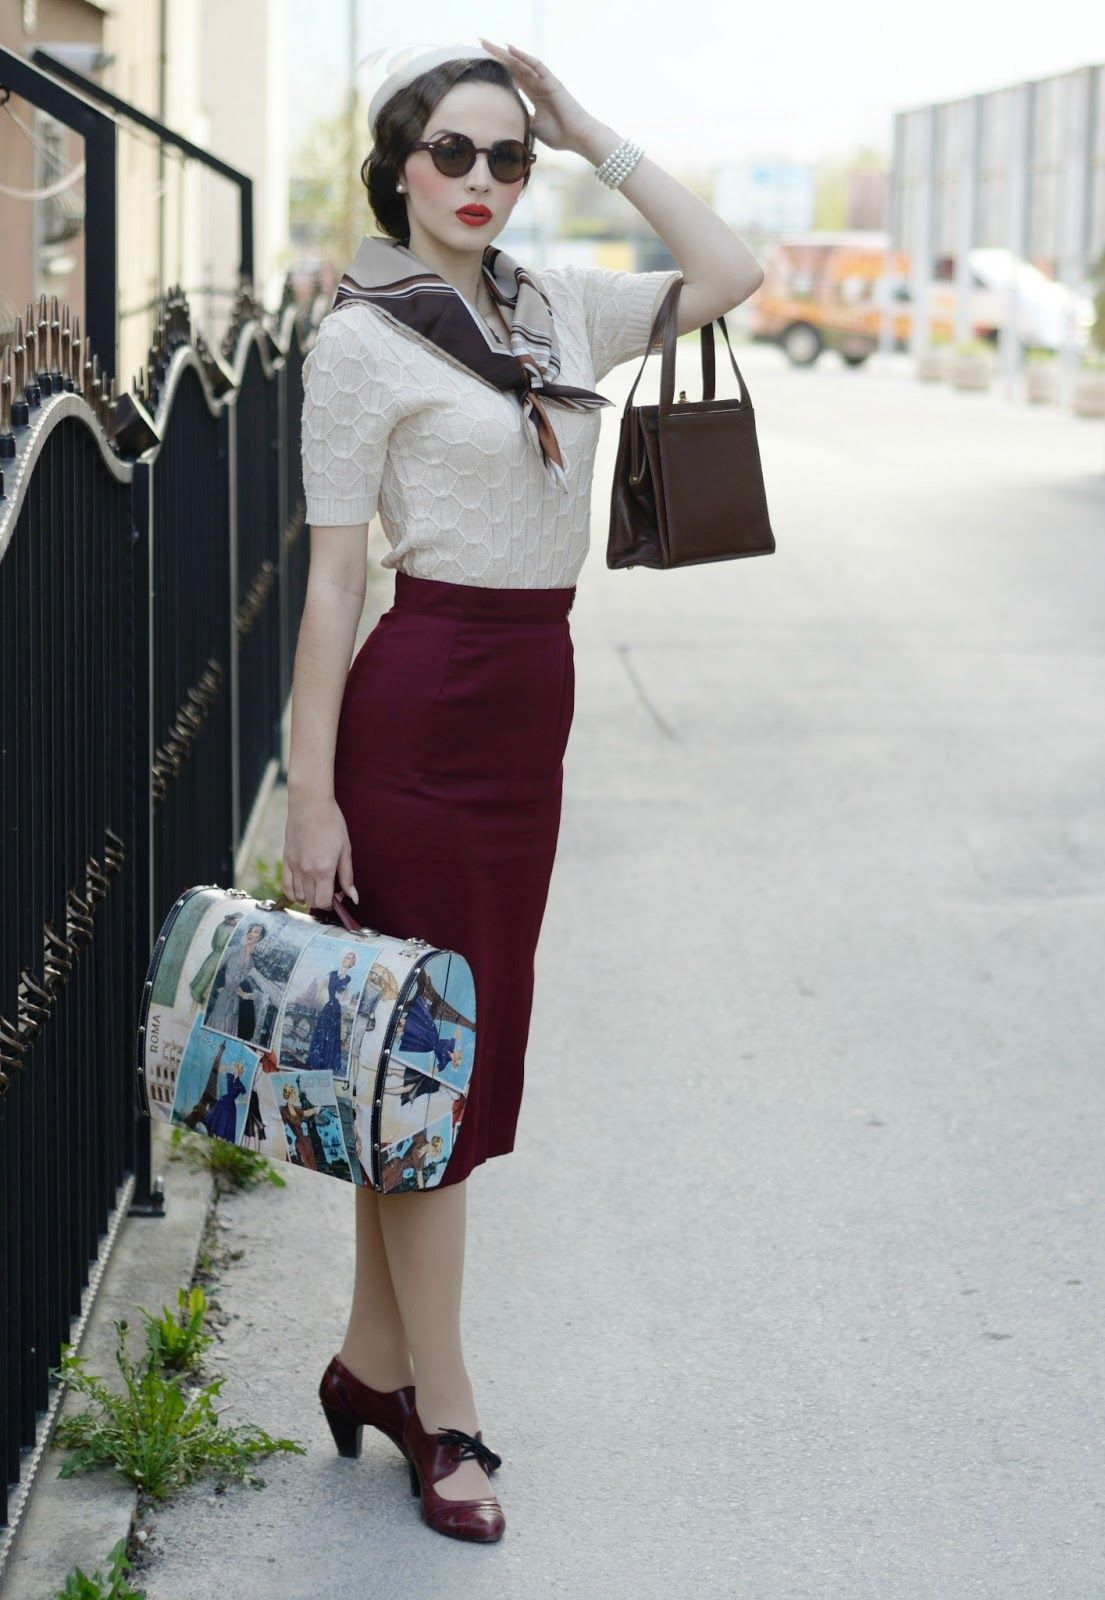 Red Skirt White Blouse And Blue Navy Top Scarf The Sailor Women Outfit Of 50 S Women Wore Classy Outfits In The 50 1940s Fashion 1930s Fashion Classy Outfits